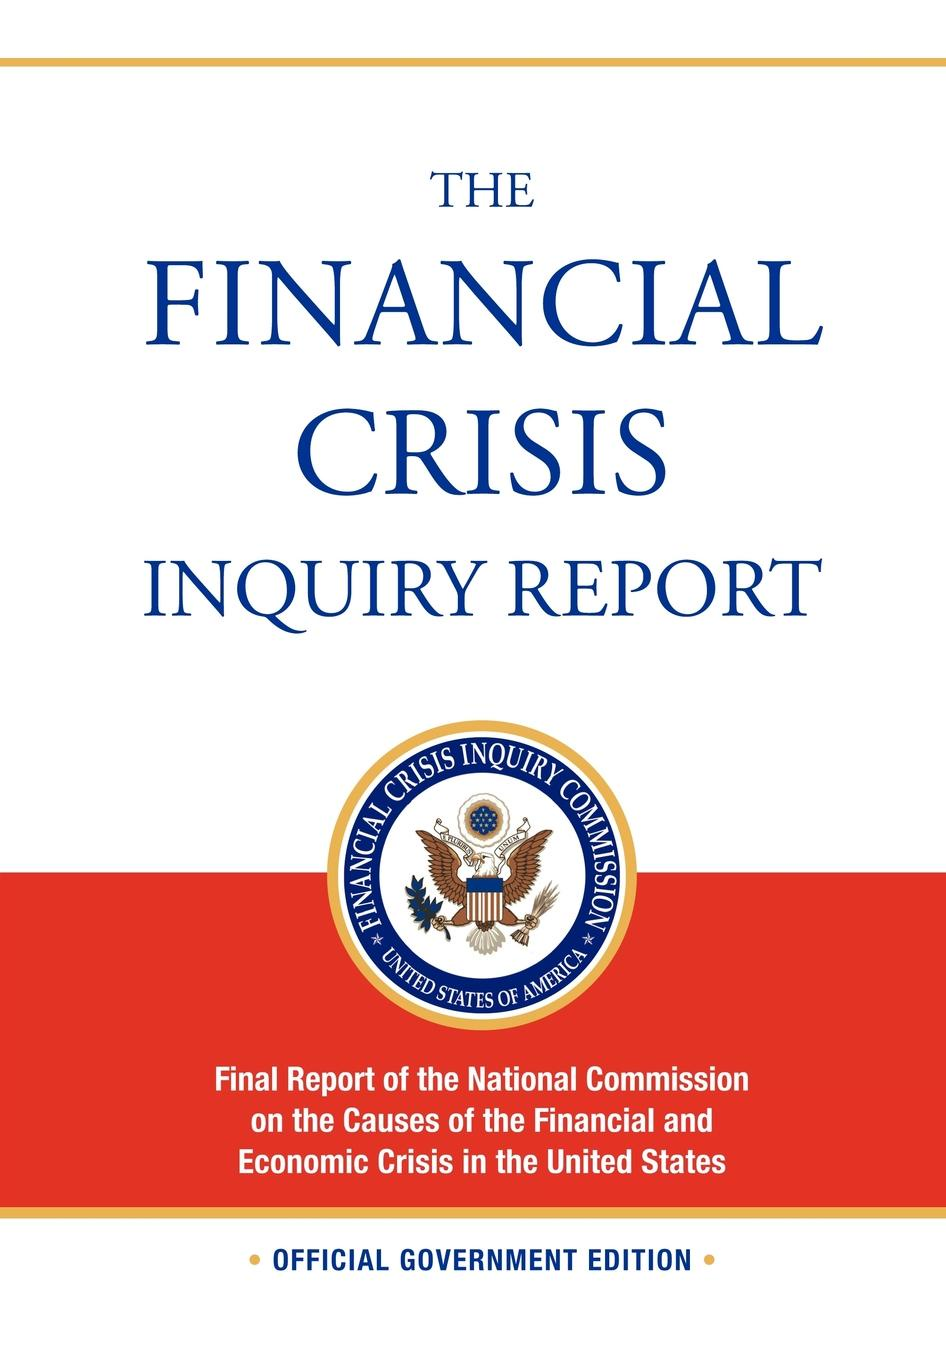 цены на Financial Crisis Inquiry Commission The Financial Crisis Inquiry Report. FULL Final Report (Includiing Dissenting Views) Of The National Commission On The Causes Of The Financial And Economic Crisis In The United States  в интернет-магазинах